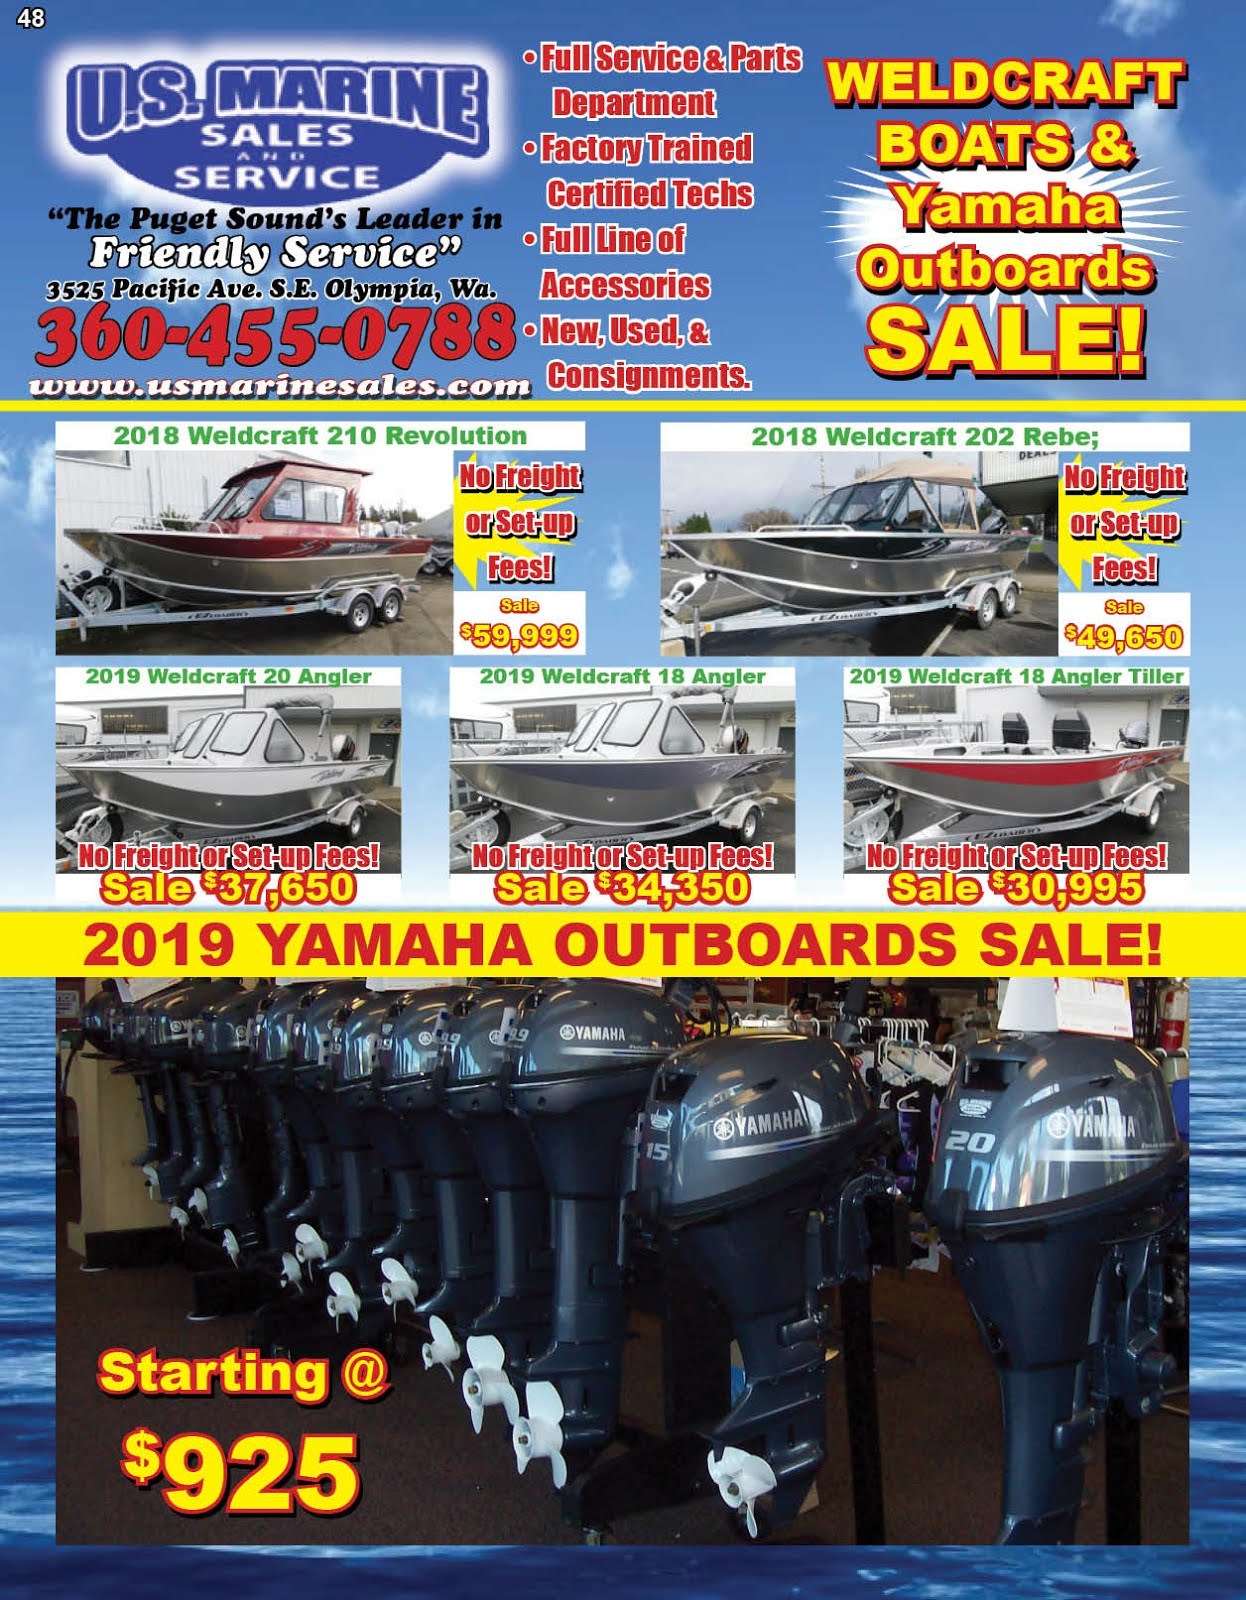 US Marine Sales & Service Carries Yamaha Marine, Weldcraft, Lund, G3 & Suncatcher Pontoons!